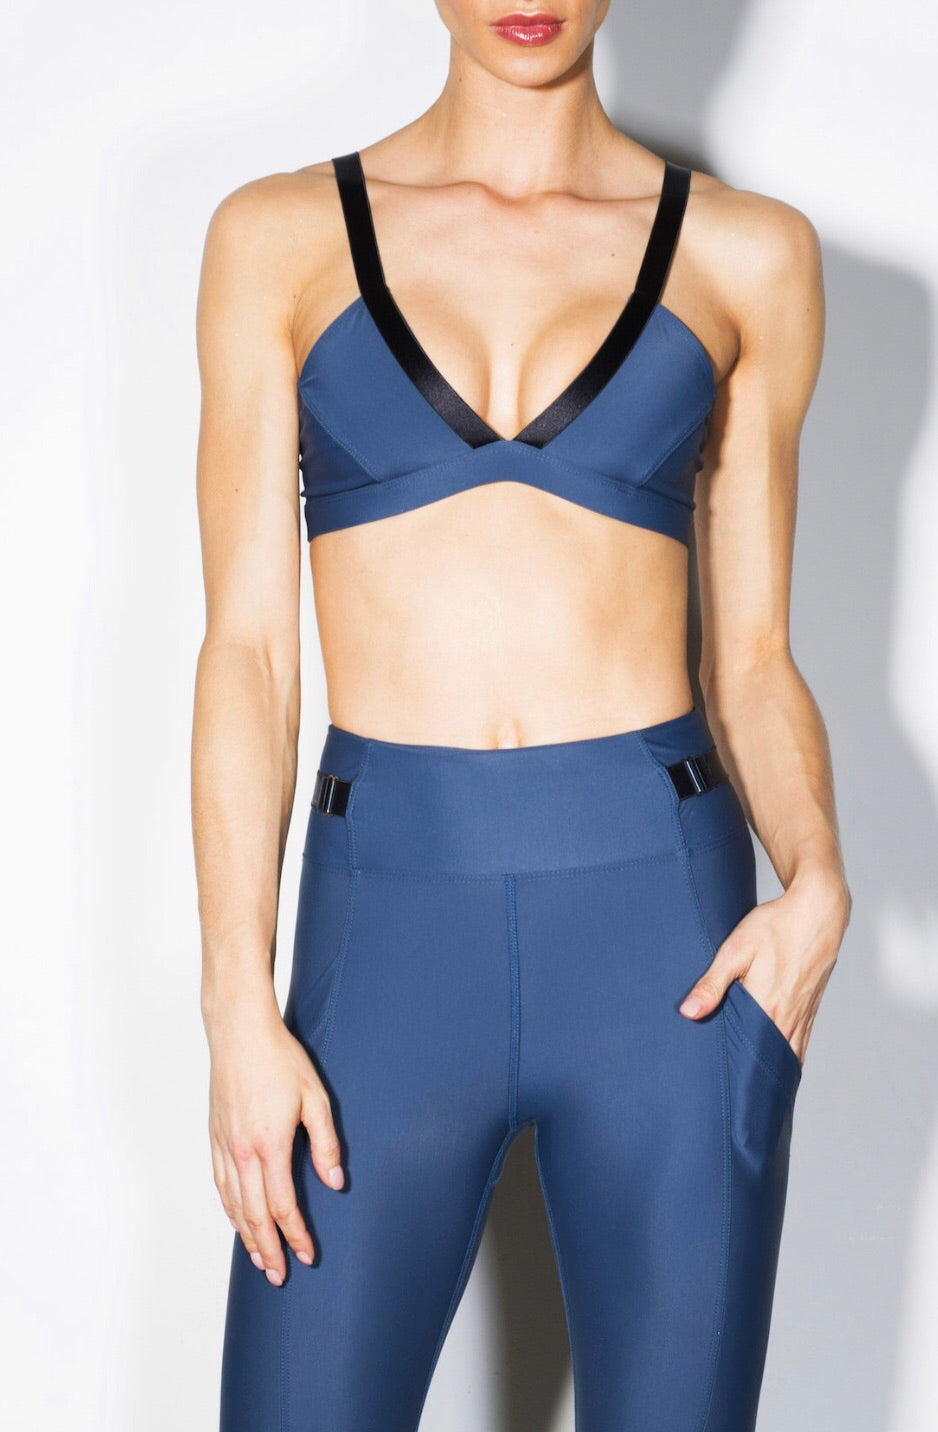 Heroine One47 Sports Bra - Arctic Blue